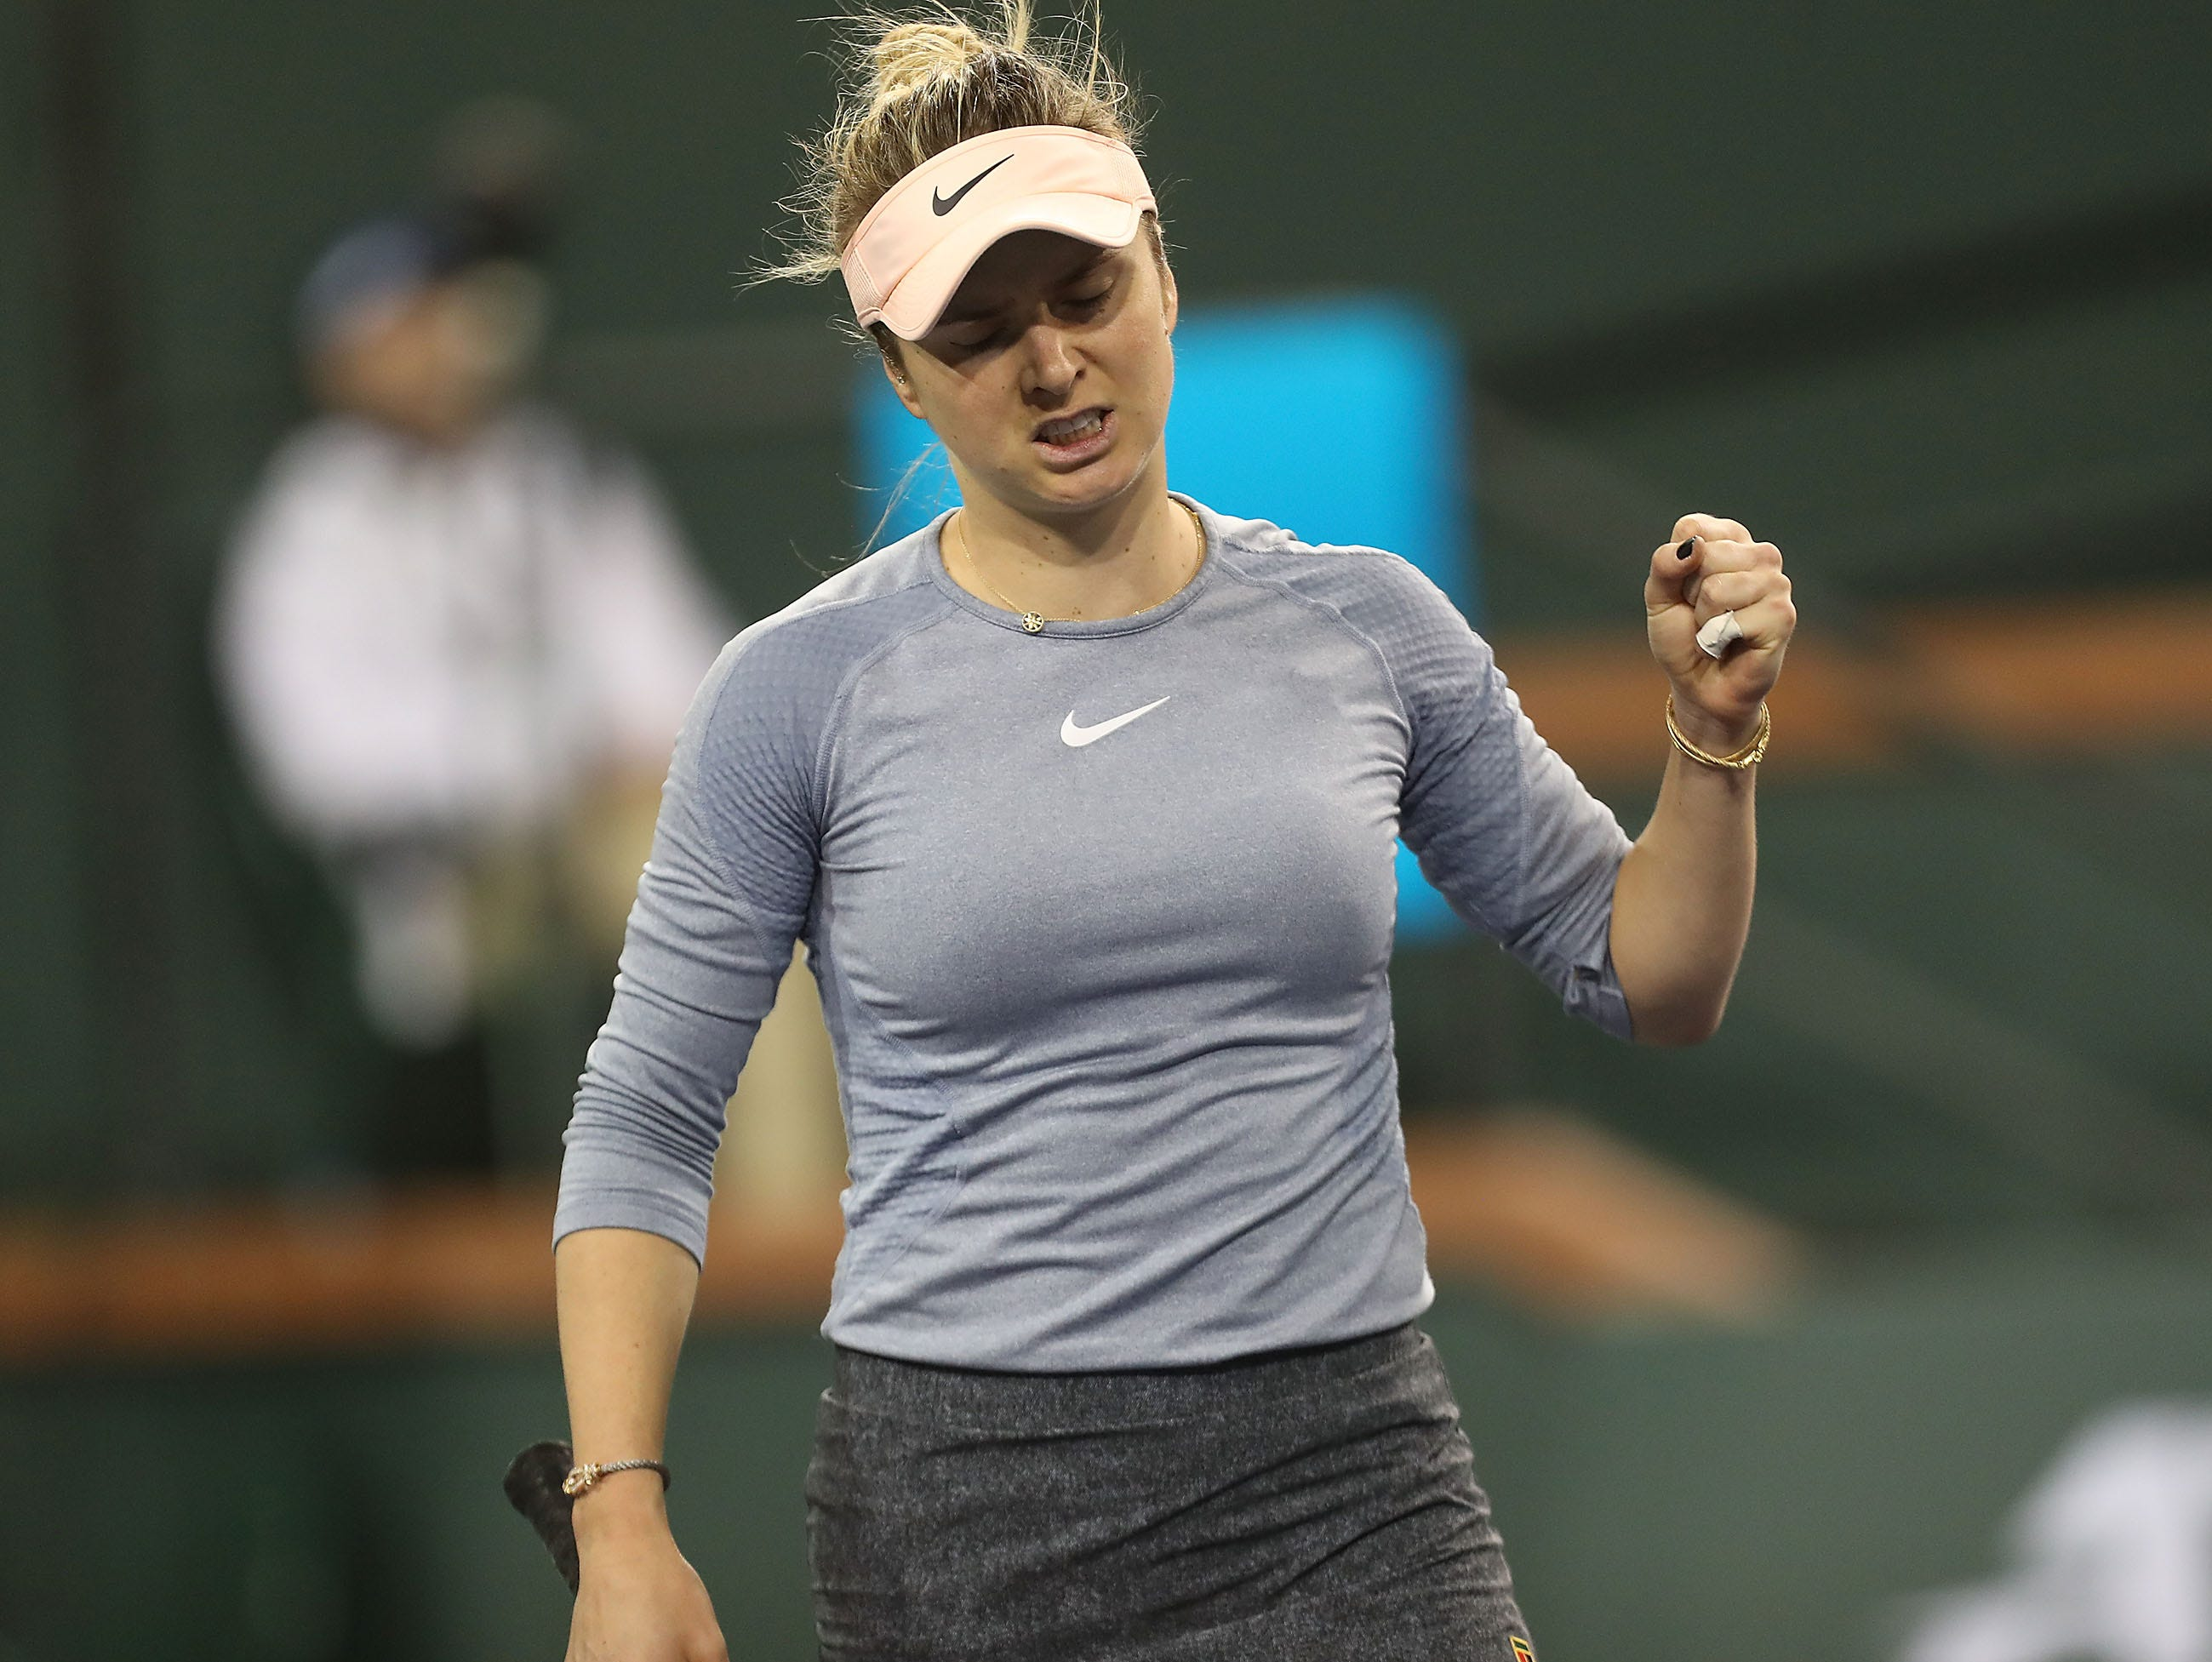 Evina Svitolina celebrates a point win during the semifinal match at the BNP Paribas Open in Indian Wells, March 15, 2019.